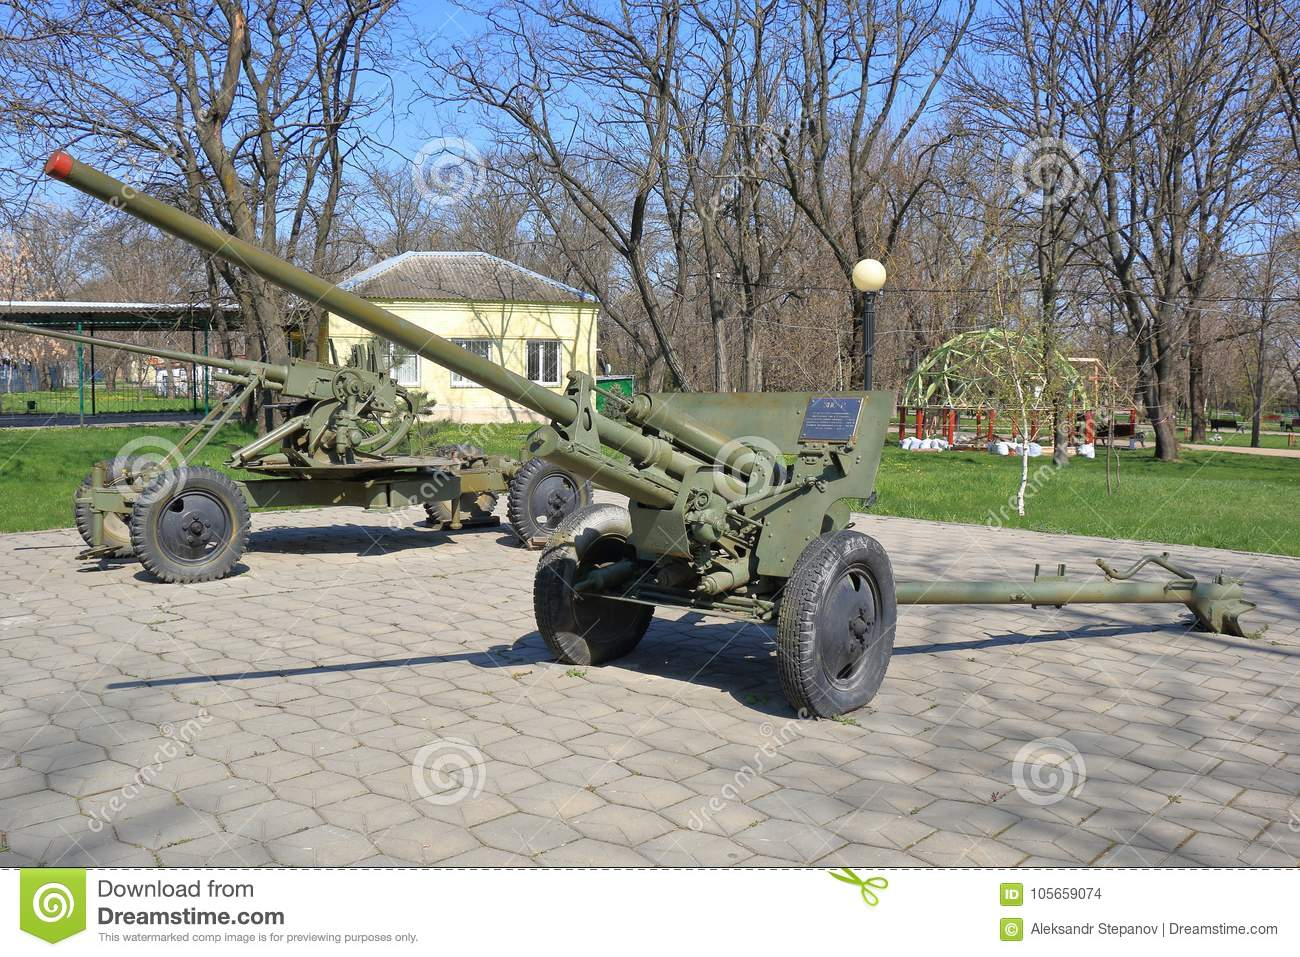 zis 2 is a soviet 57 mm anti tank gun used during wwii editorial